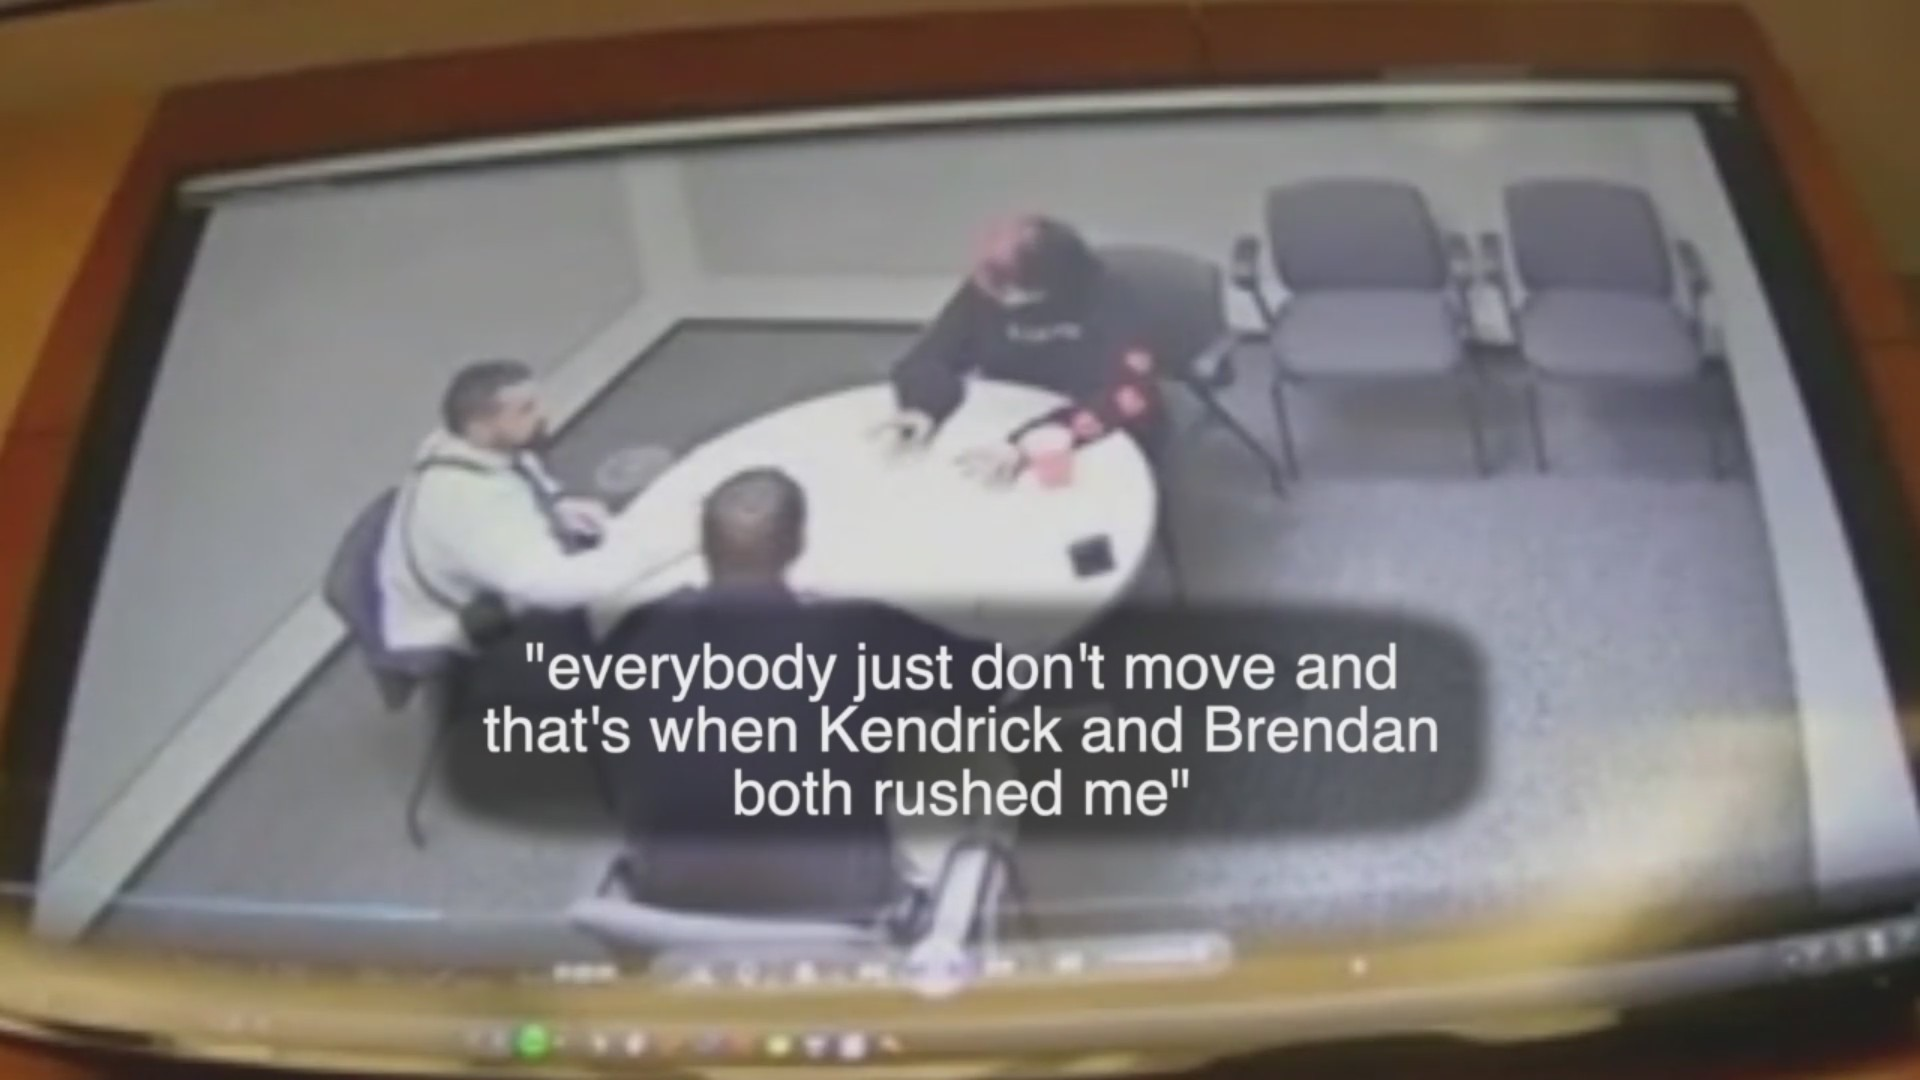 Surveillance vide of three people talking at a table